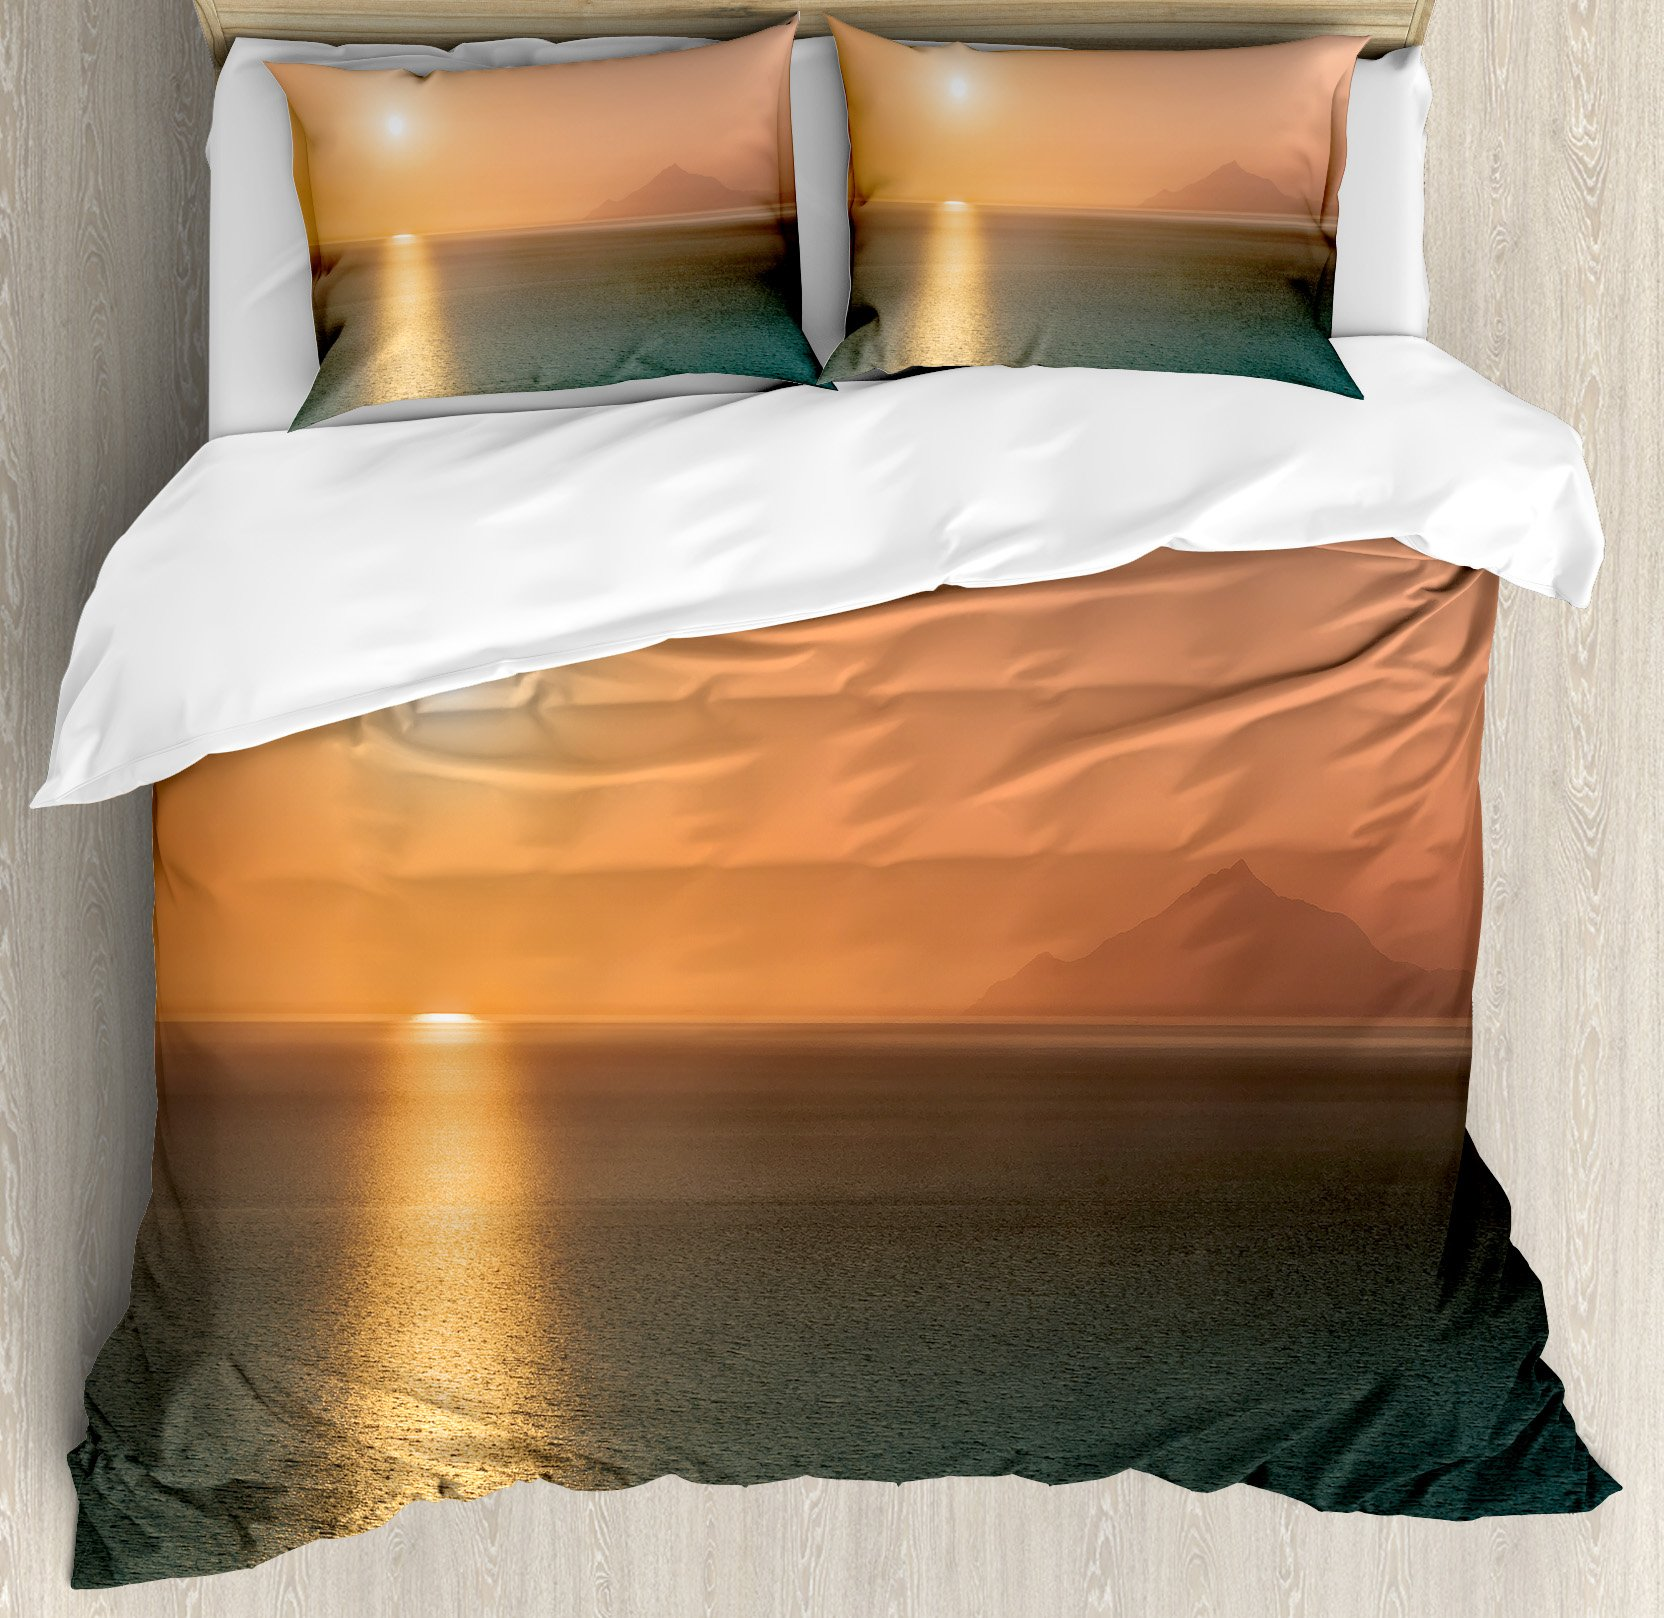 Burnt Orange Duvet Cover Set King Size by Ambesonne, Sunrise over Ocean Magical Burnt Horizon Reflection Seascape Coastal Theme, Decorative 3 Piece Bedding Set with 2 Pillow Shams, Orange Blue